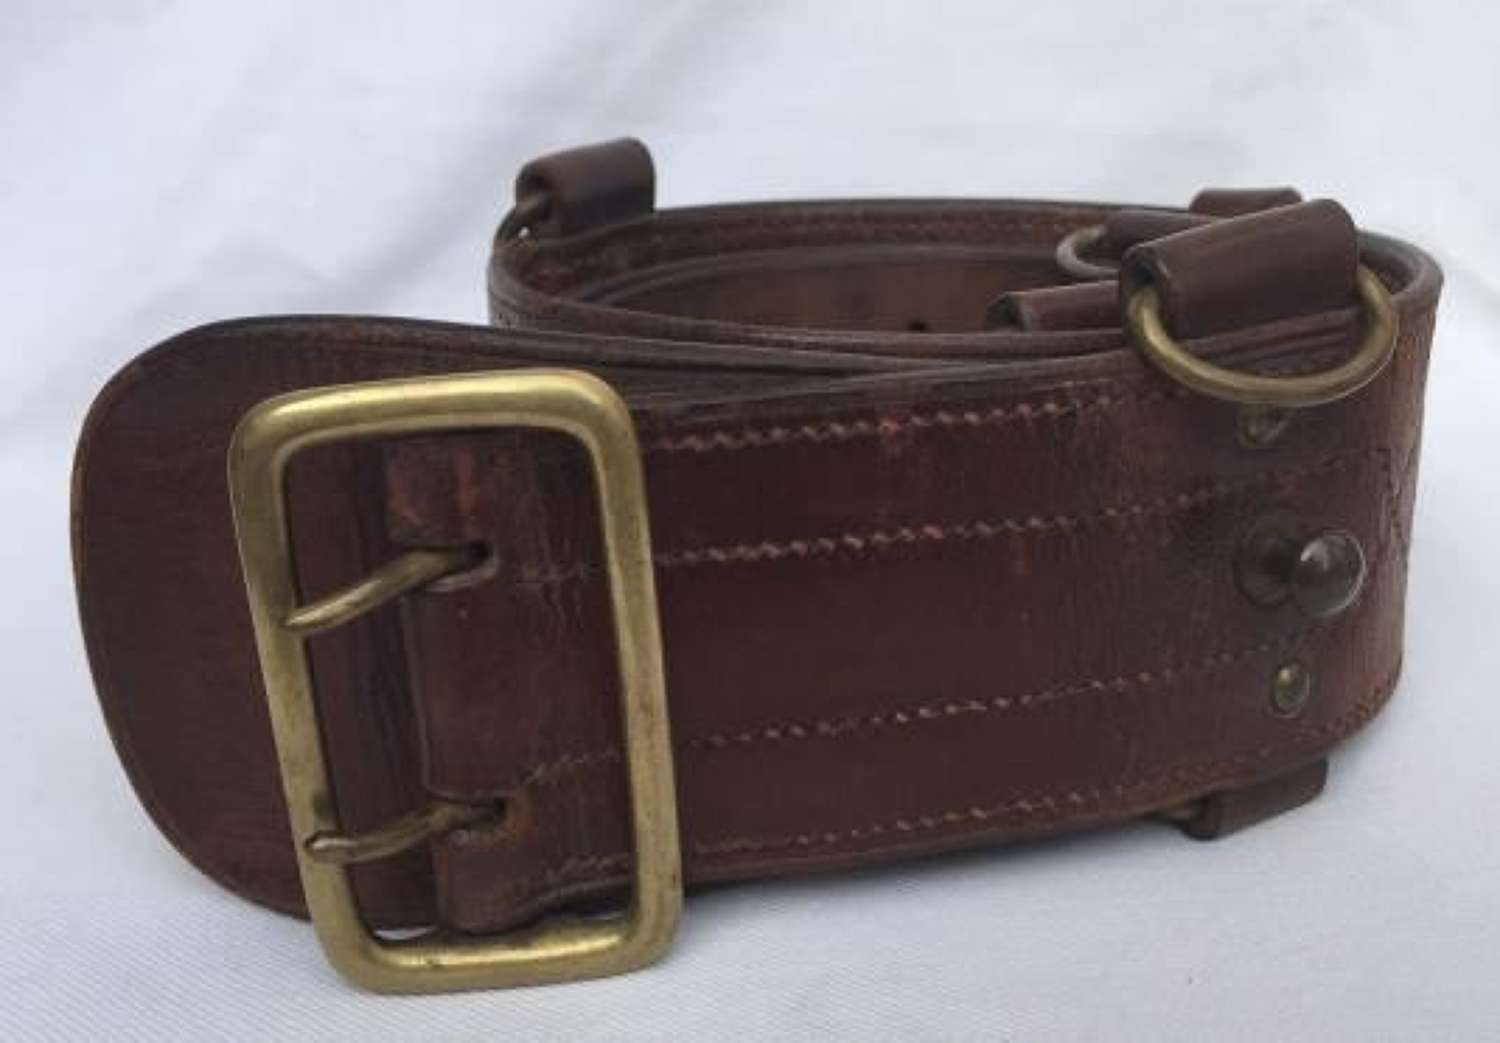 1941 Dated British Army Sam Browne Belt With Double D-Rings